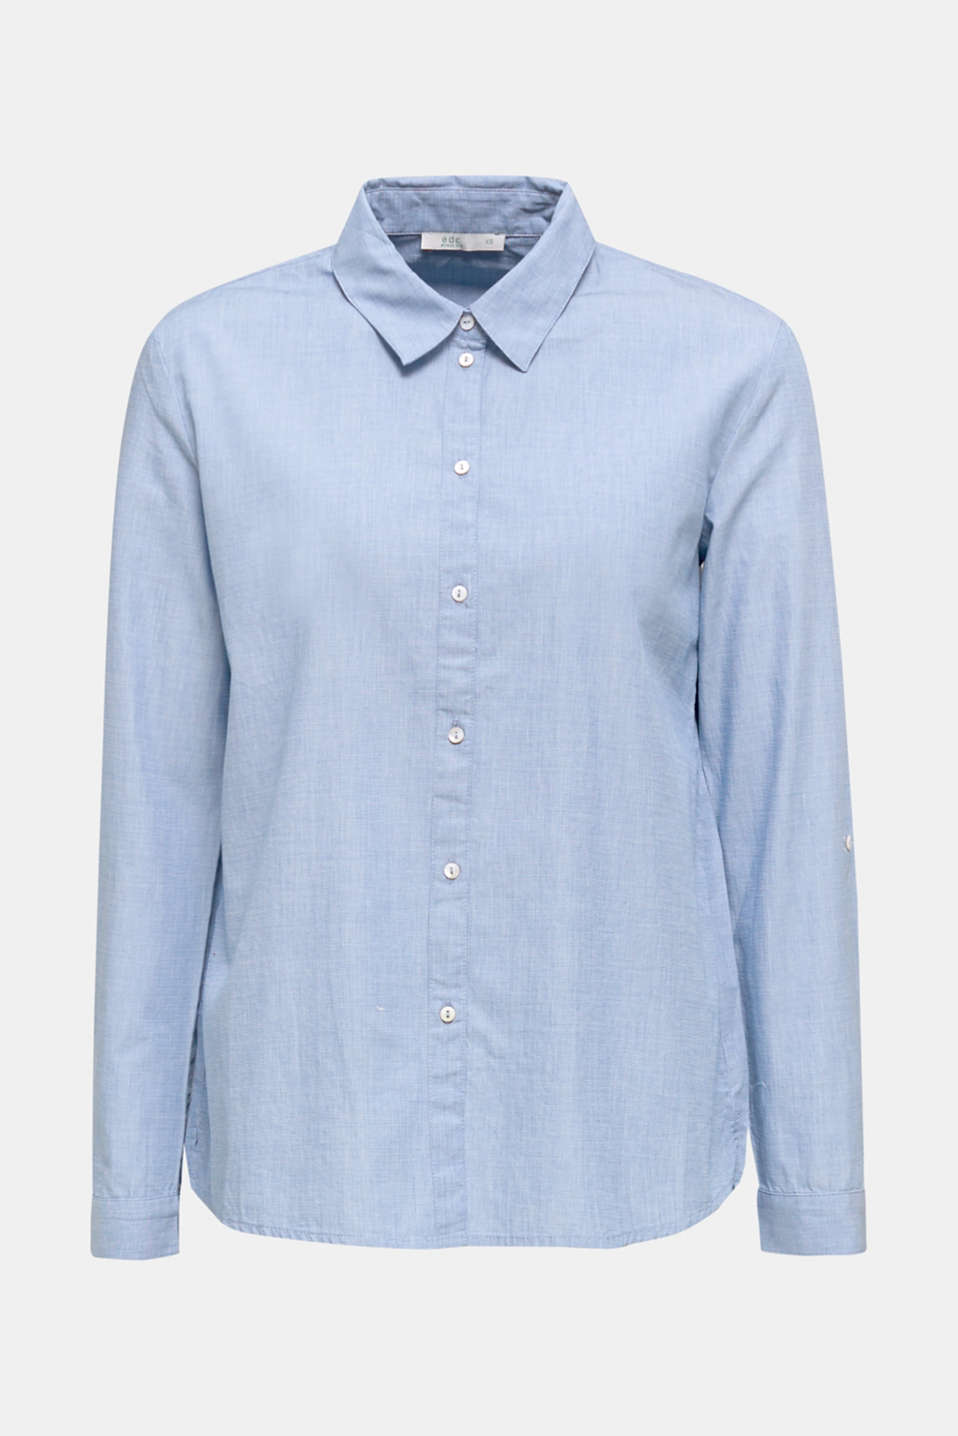 Chambray blouse made of 100% cotton, LIGHT BLUE, detail image number 7